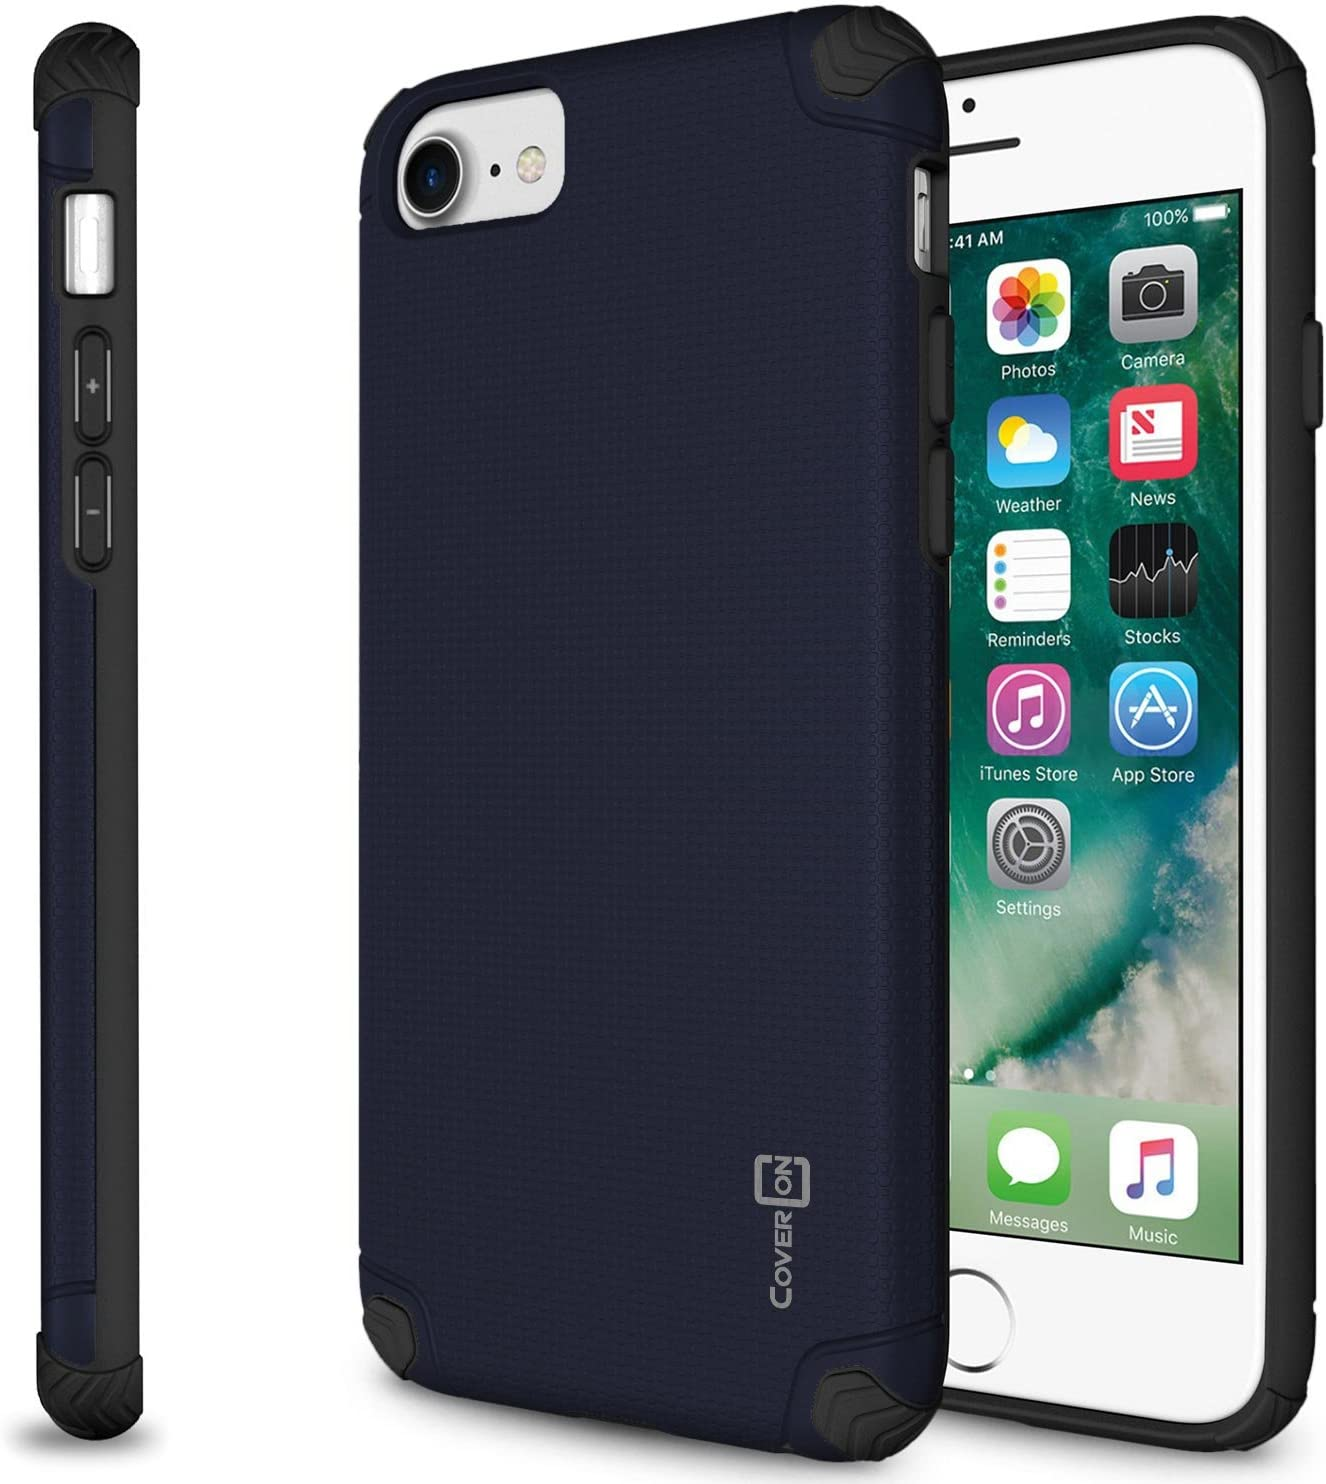 CoverON Slim Grip Designed for Apple iPhone SE Case (2020) / iPhone 8 Case, Dual Layer Hybrid Phone Cover - Navy Blue